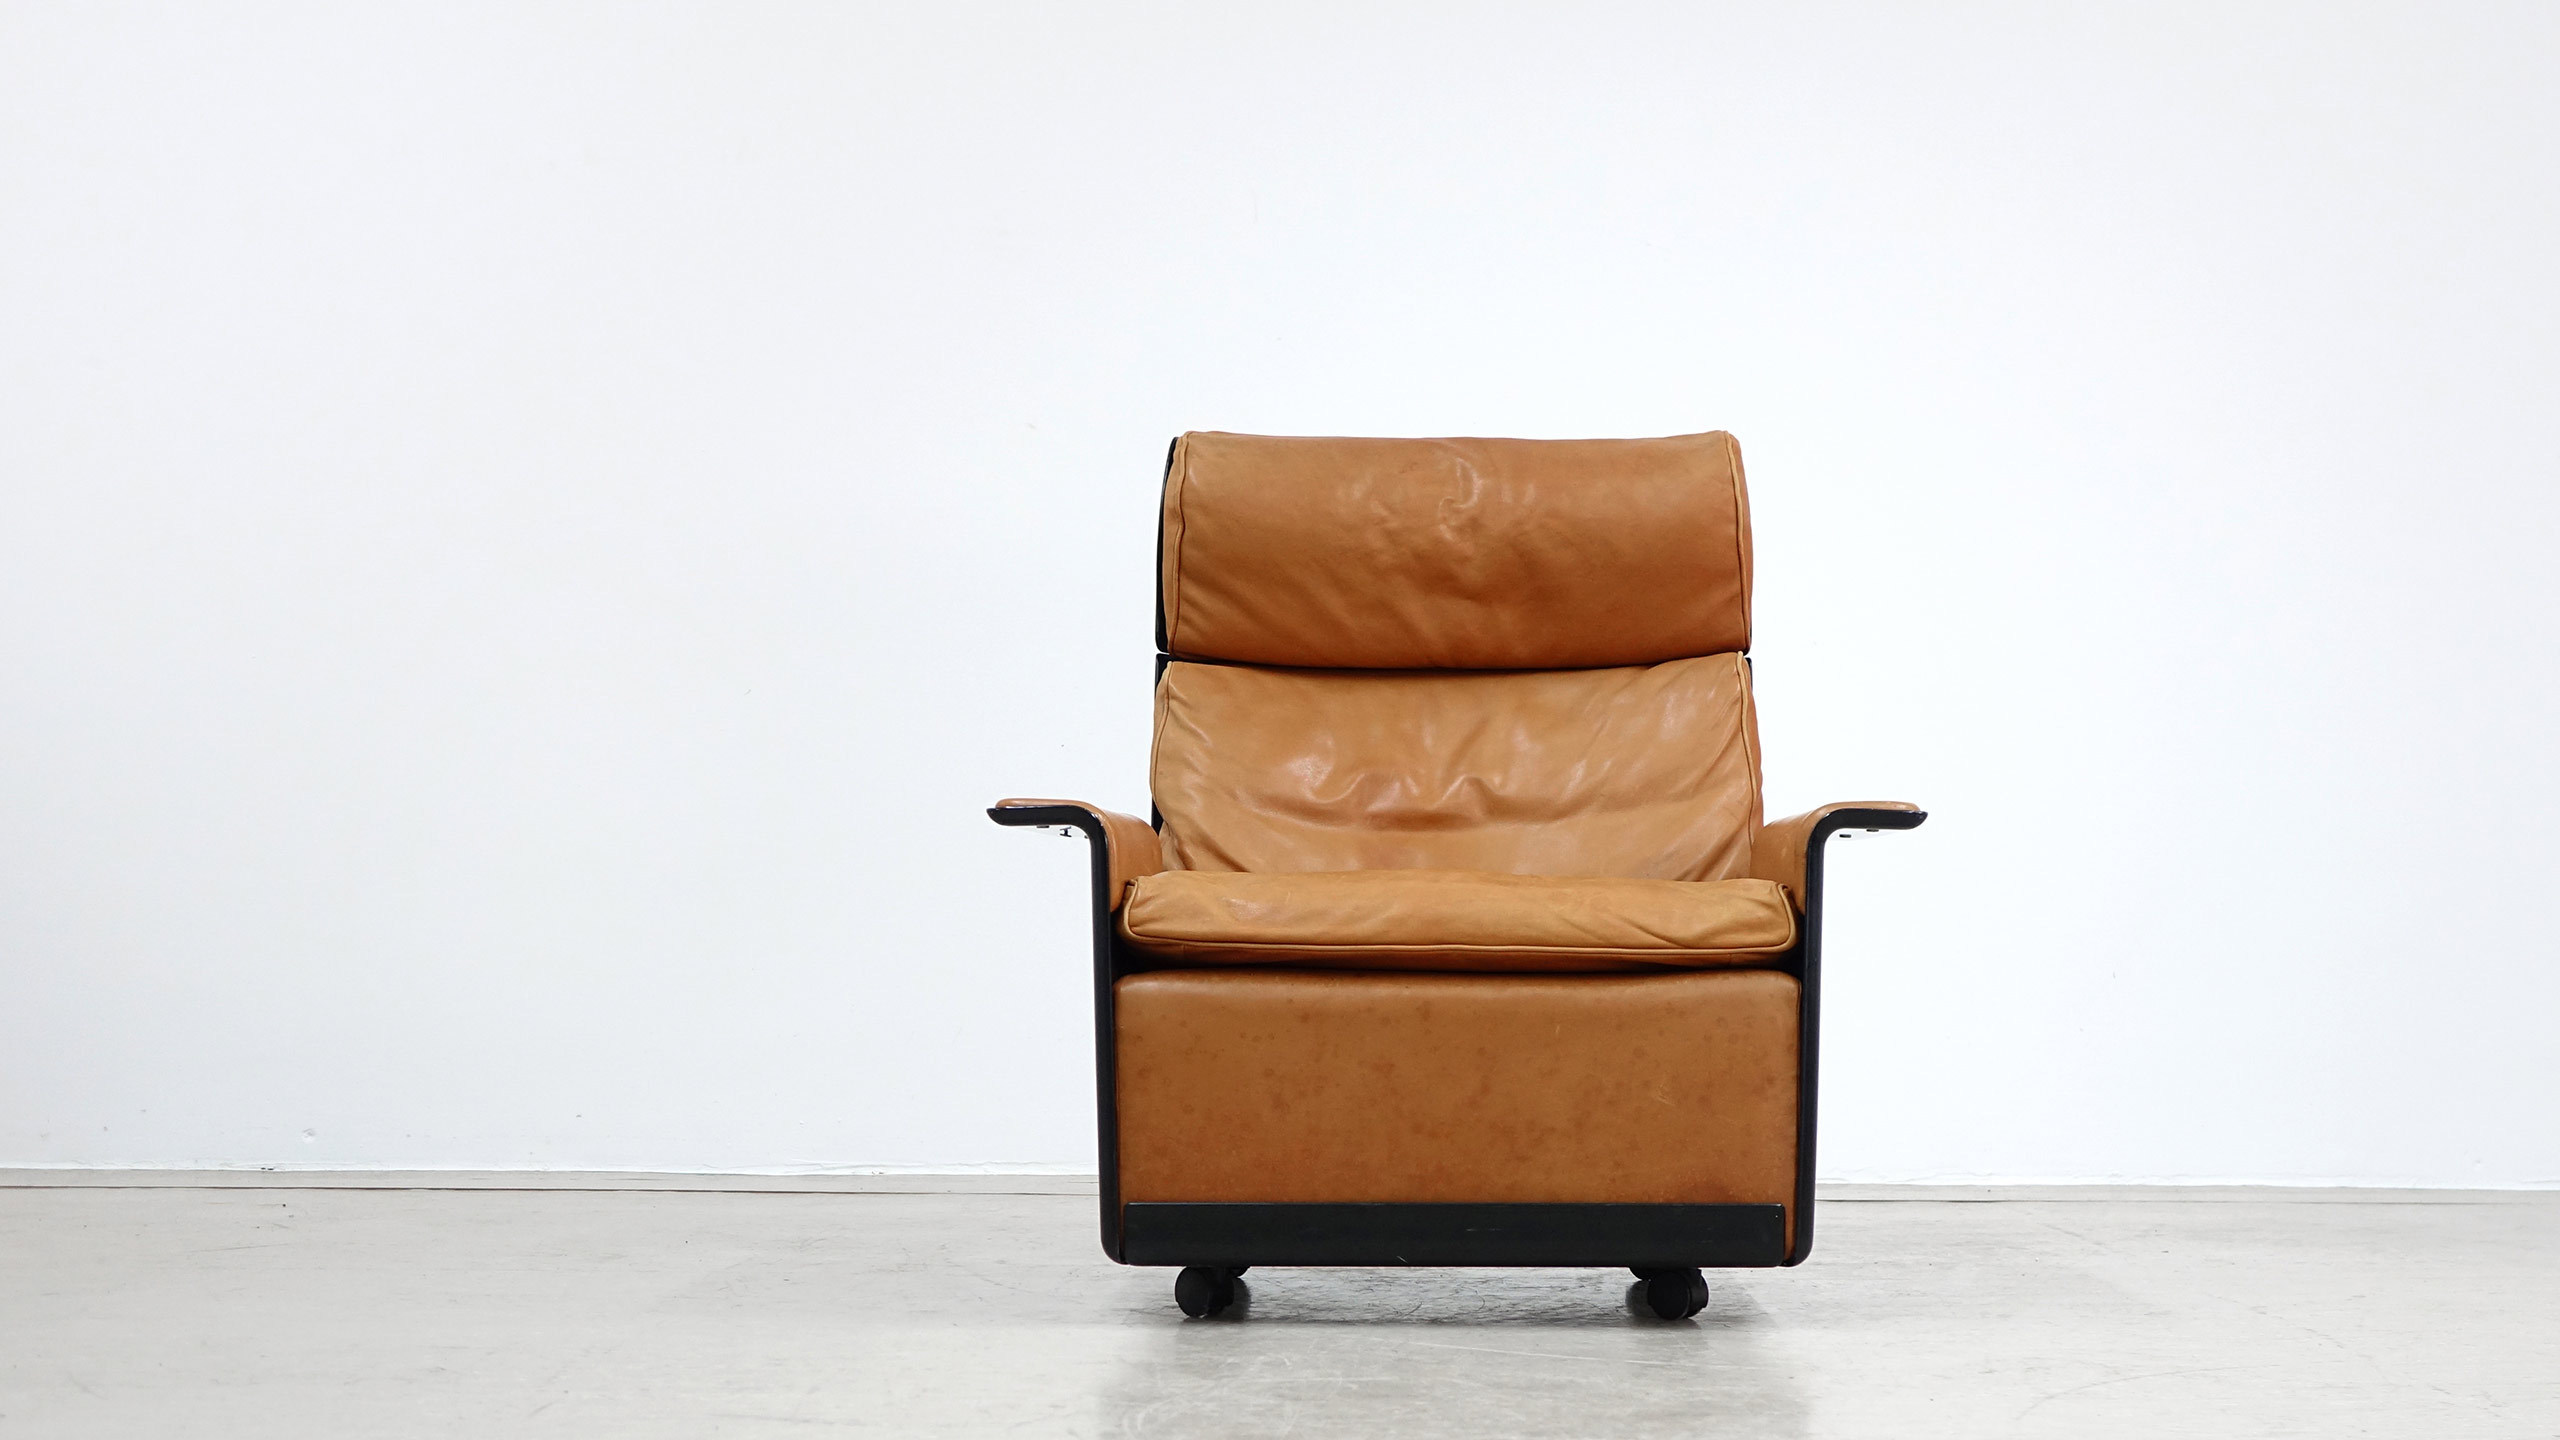 Sessel Hersteller Dieter Rams Lounge Chair Rz 620 By Vitsoe